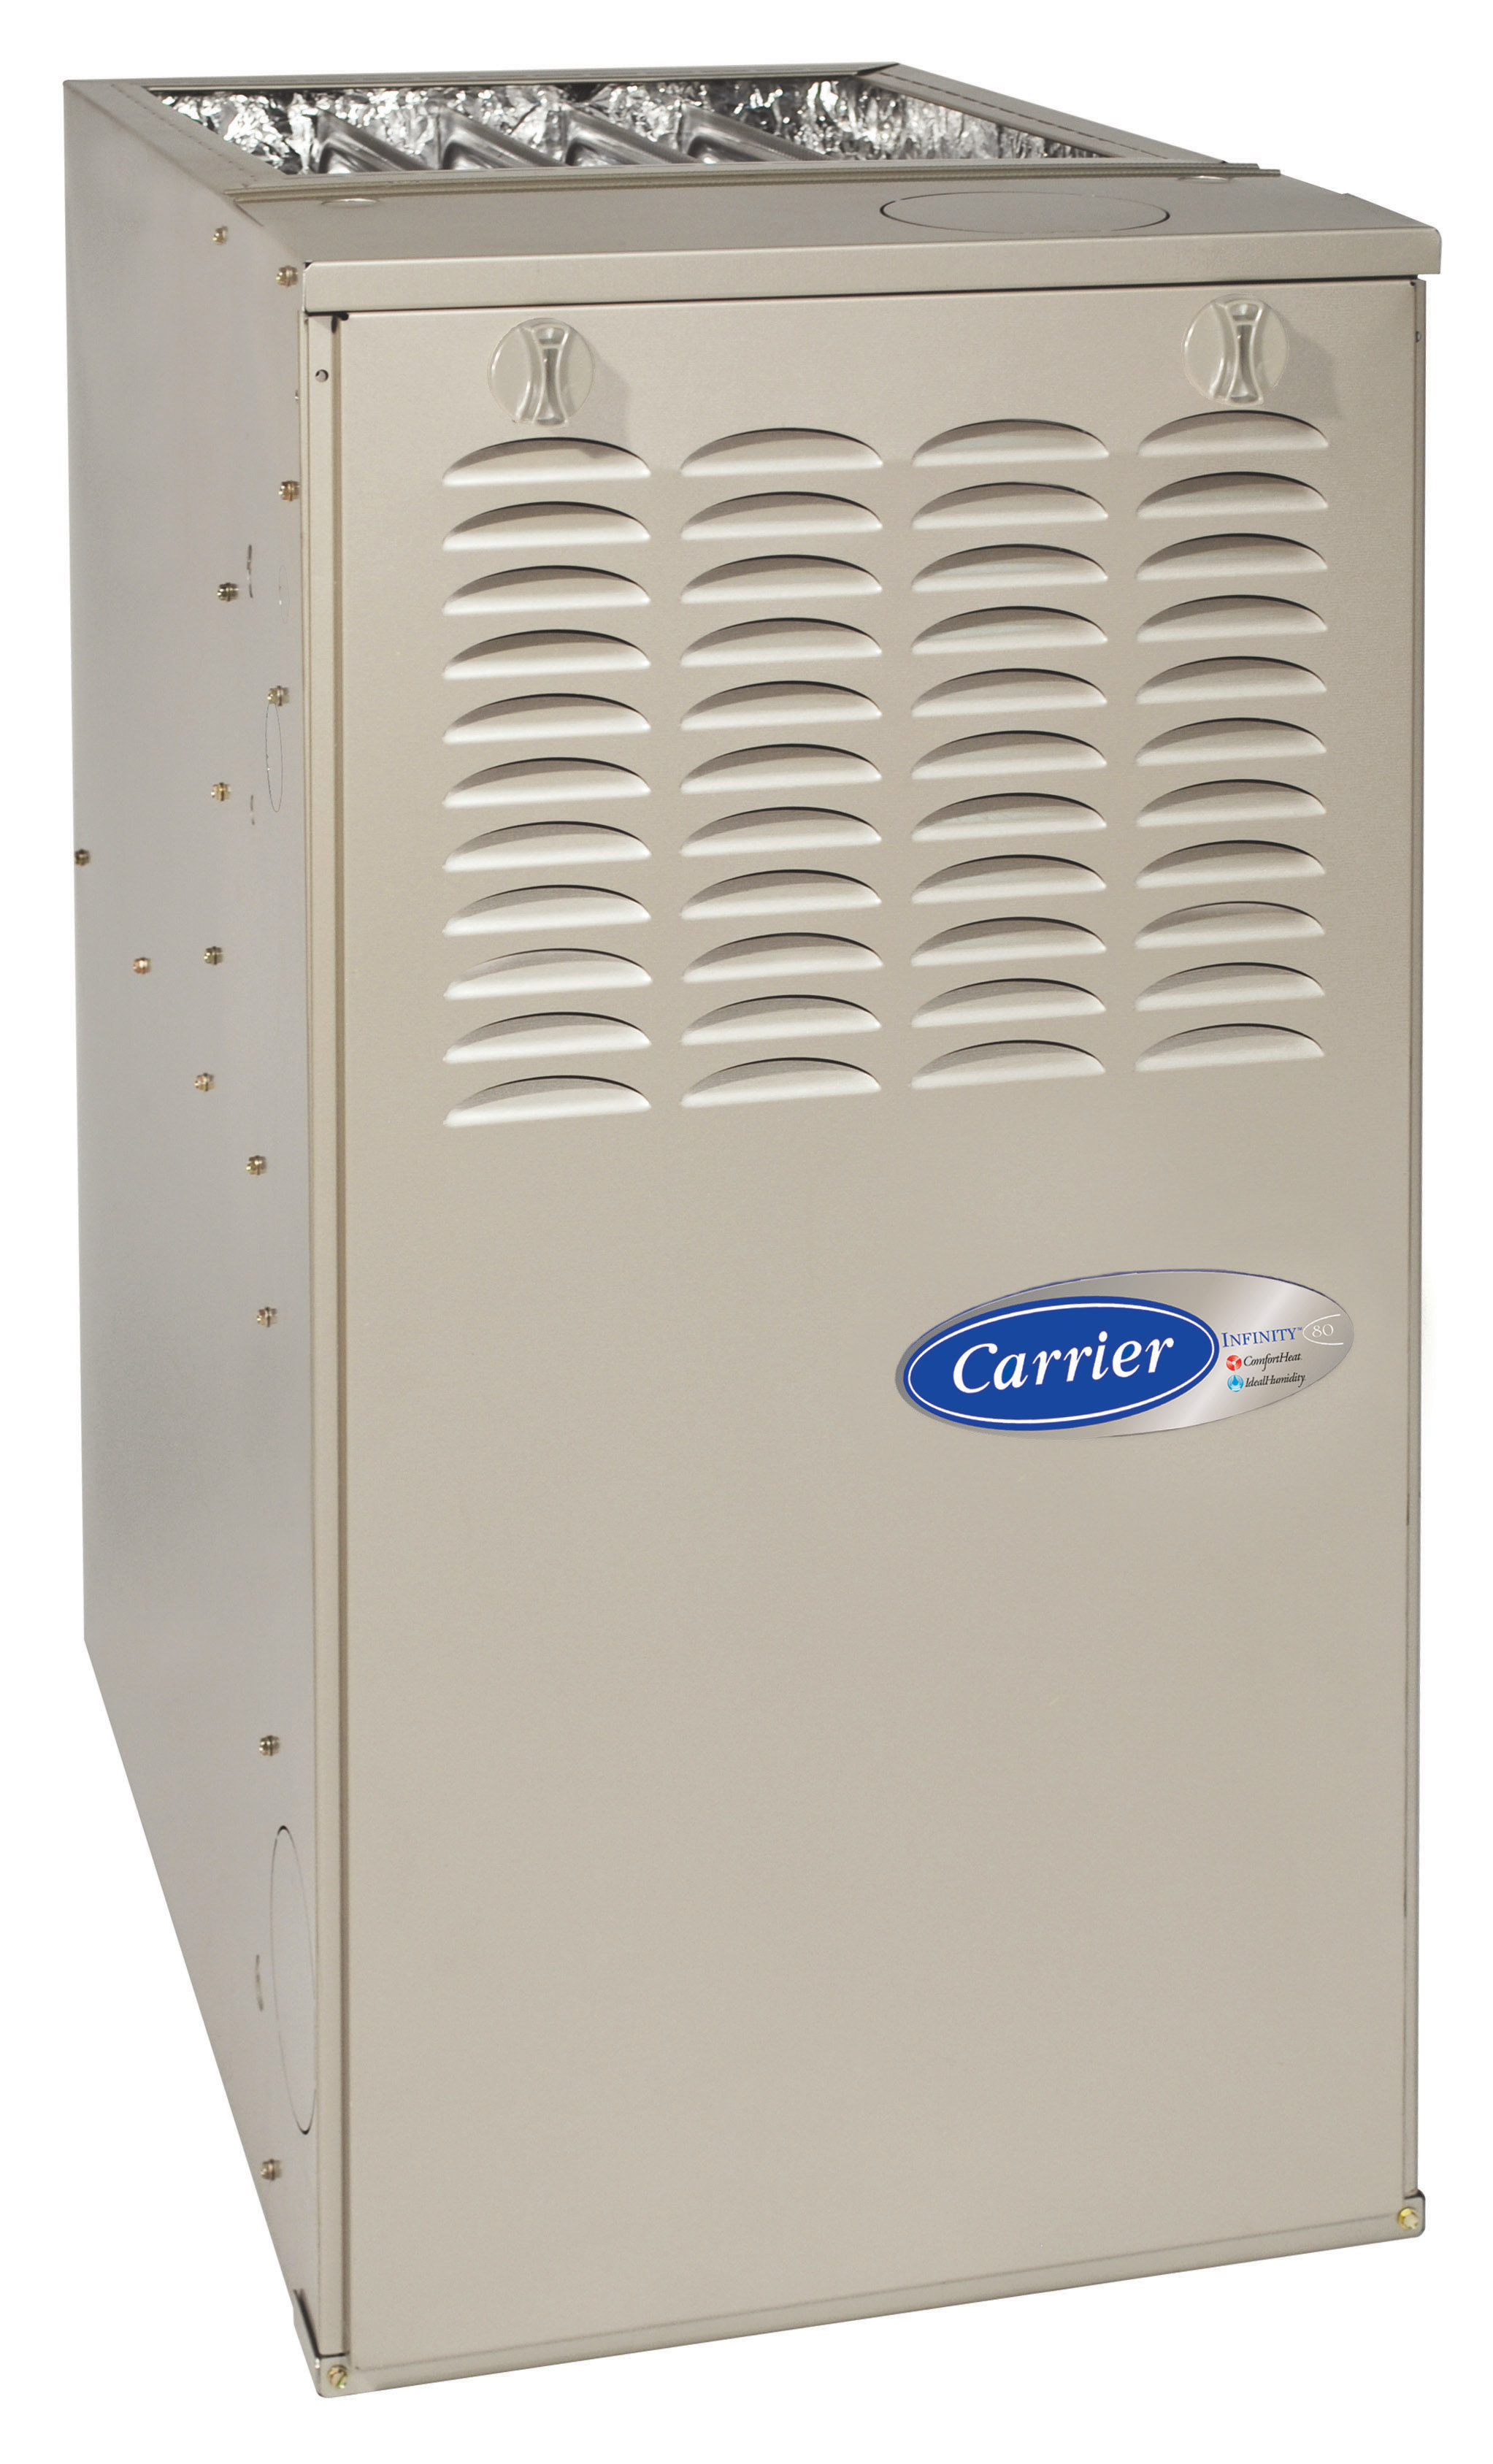 gas furnace prices - Video Search Engine at Search.com